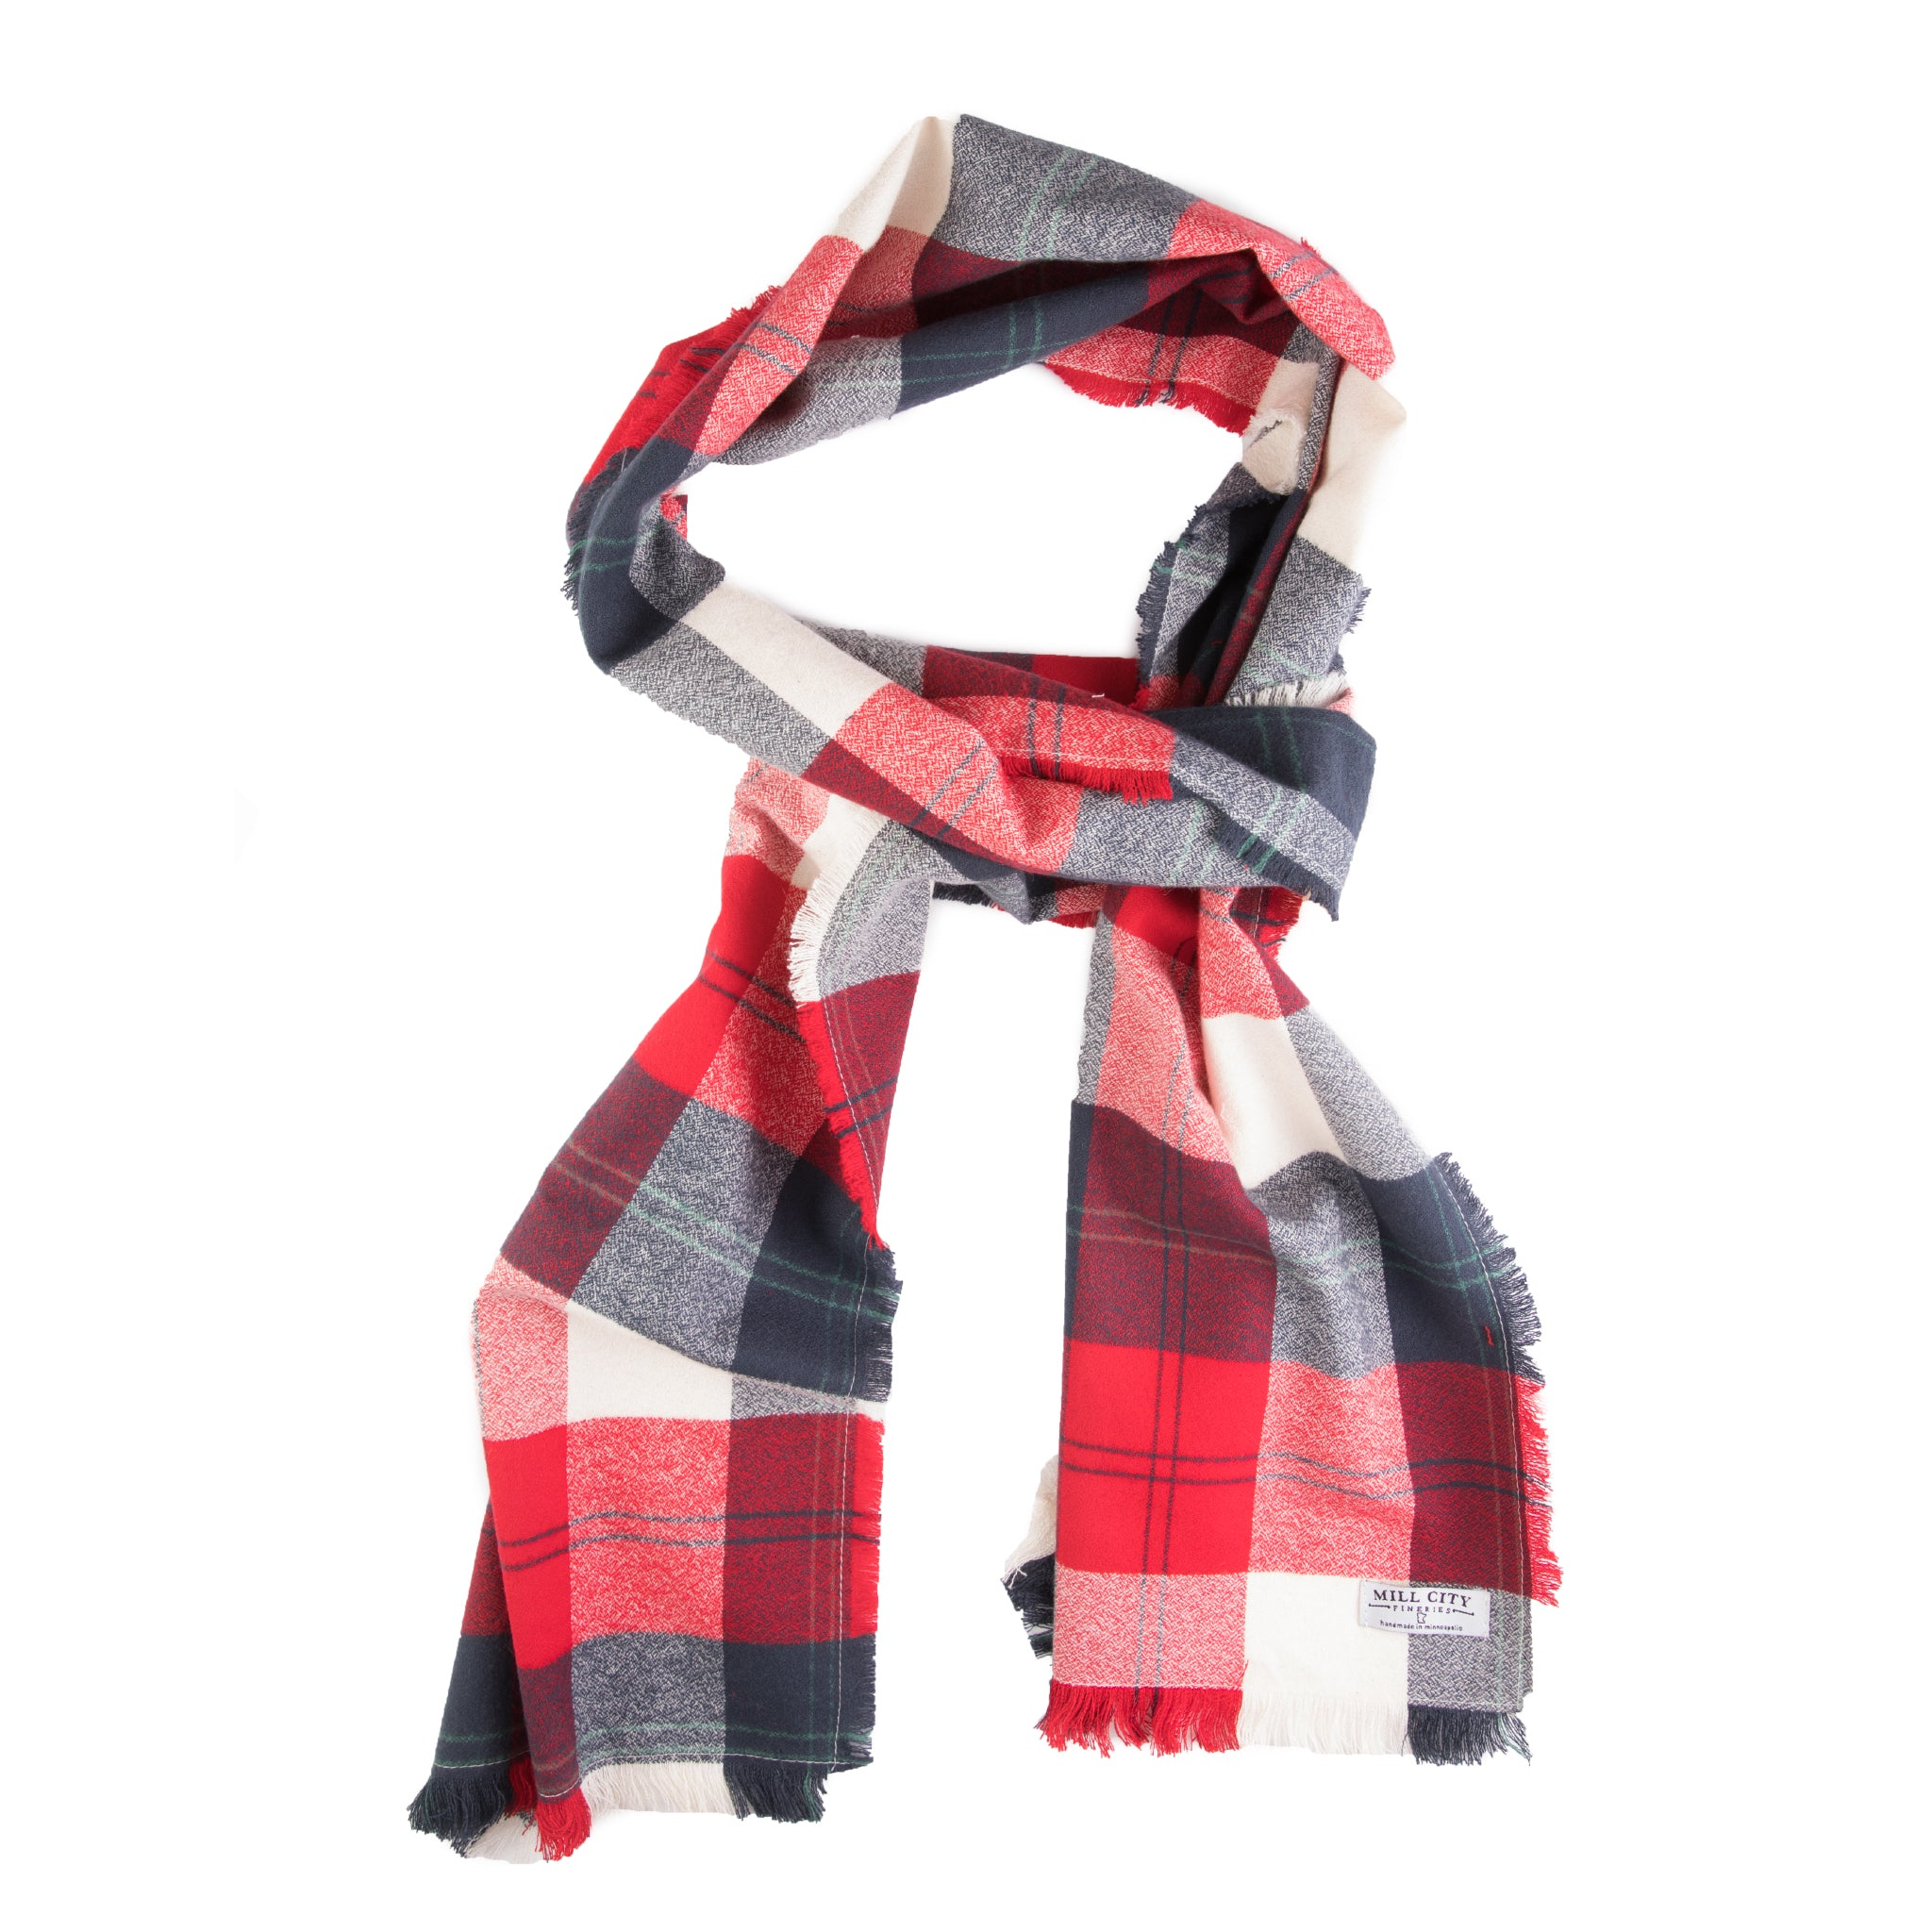 Plaid flannel scarves Check Valley Forge Plaid Flannel Scarf Urban Outfitters Valley Forge Plaid Flannel Scarf Mill City Fineries